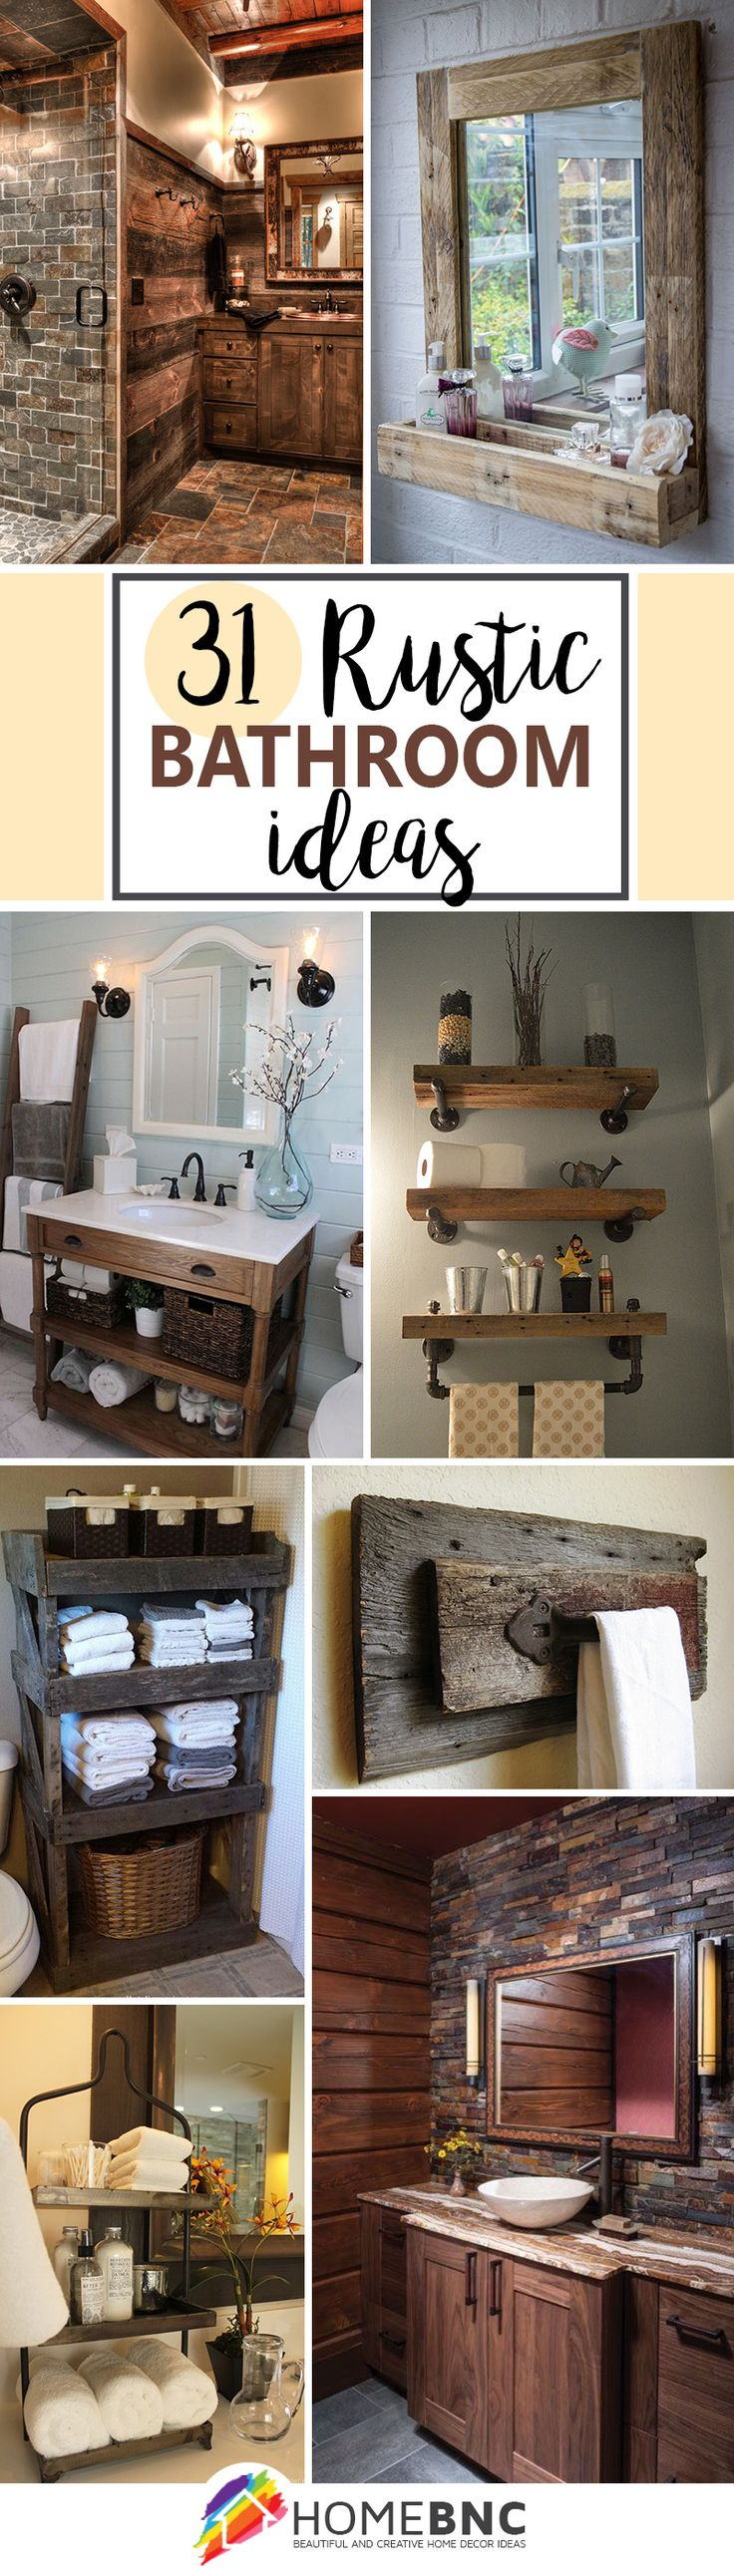 Best Rustic Bathrooms Ideas On Pinterest Rustic Bathroom - Modern bathroom hardware sets for bathroom decor ideas